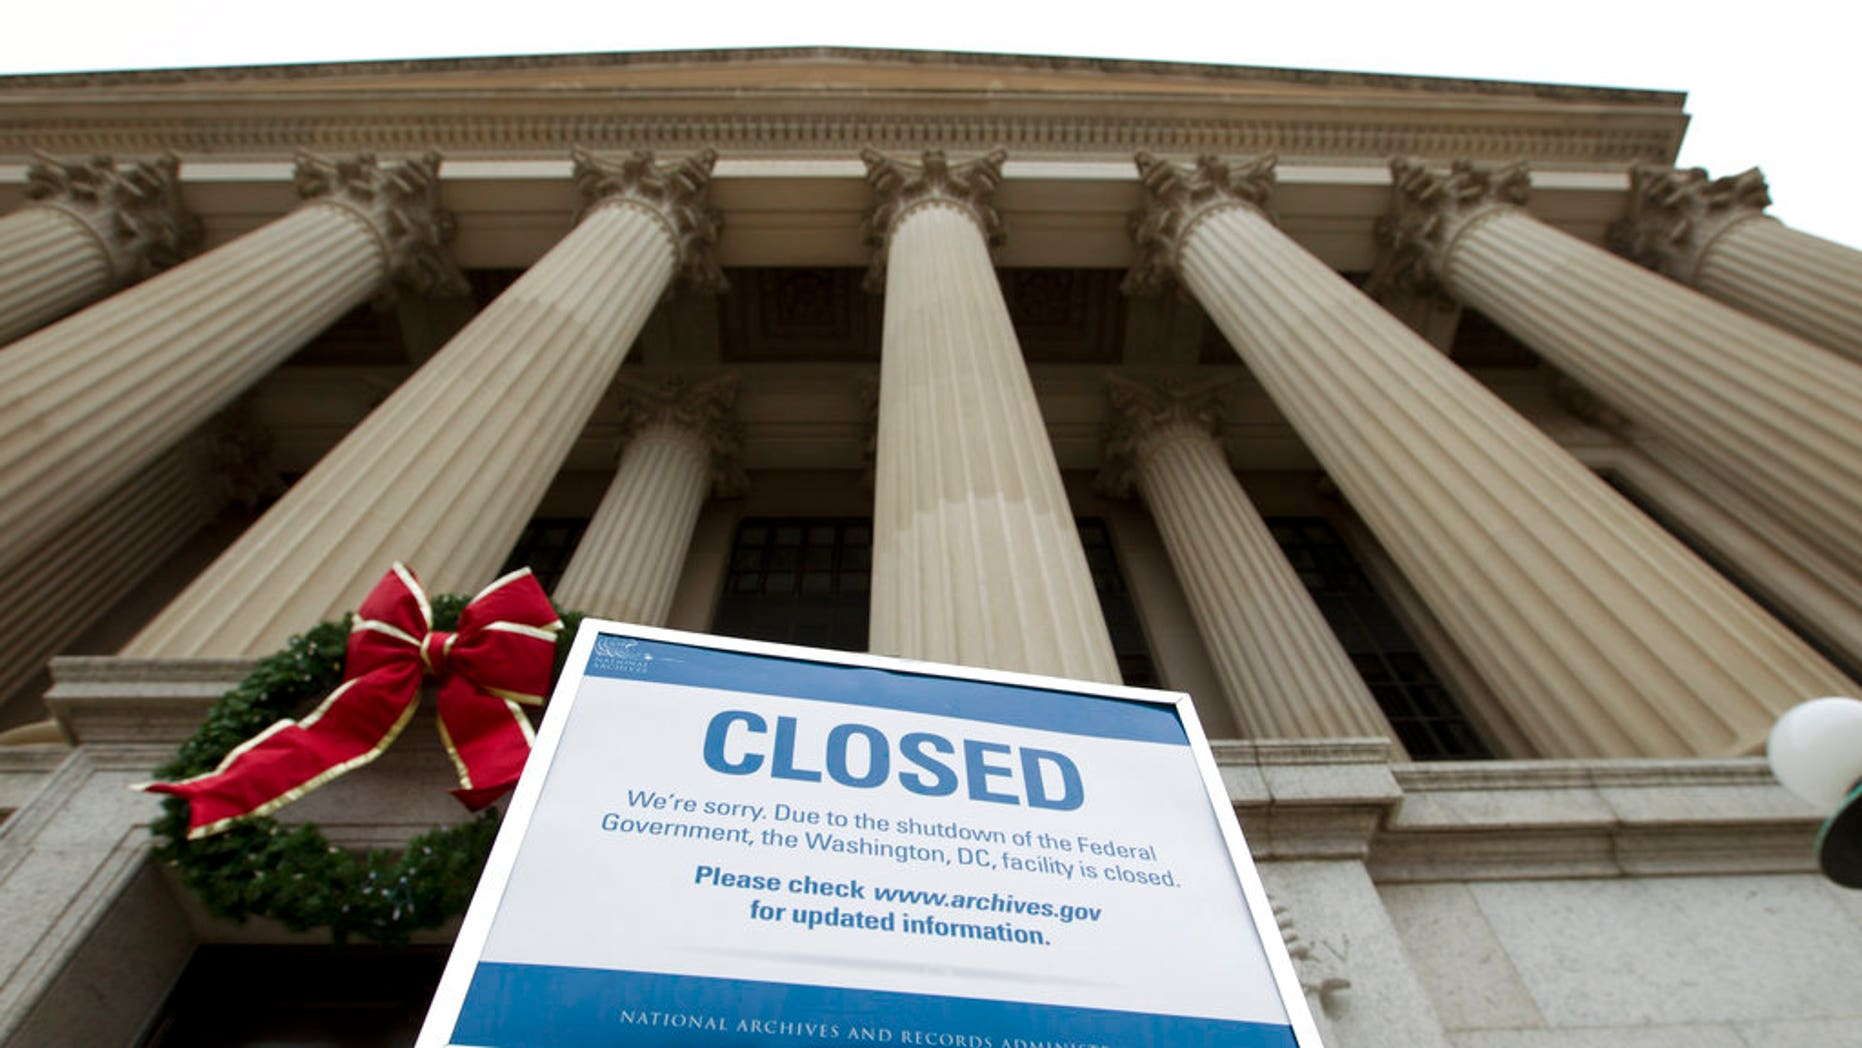 A closed sign is displayed at The National Archives entrance in Washington, Tuesday, Jan. 1, 2019, as a partial government shutdown stretches into its third week. A high-stakes move to reopen the government will be the first big battle between Nancy Pelosi and President Donald Trump as Democrats come into control of the House. (AP Photo/Jose Luis Magana)